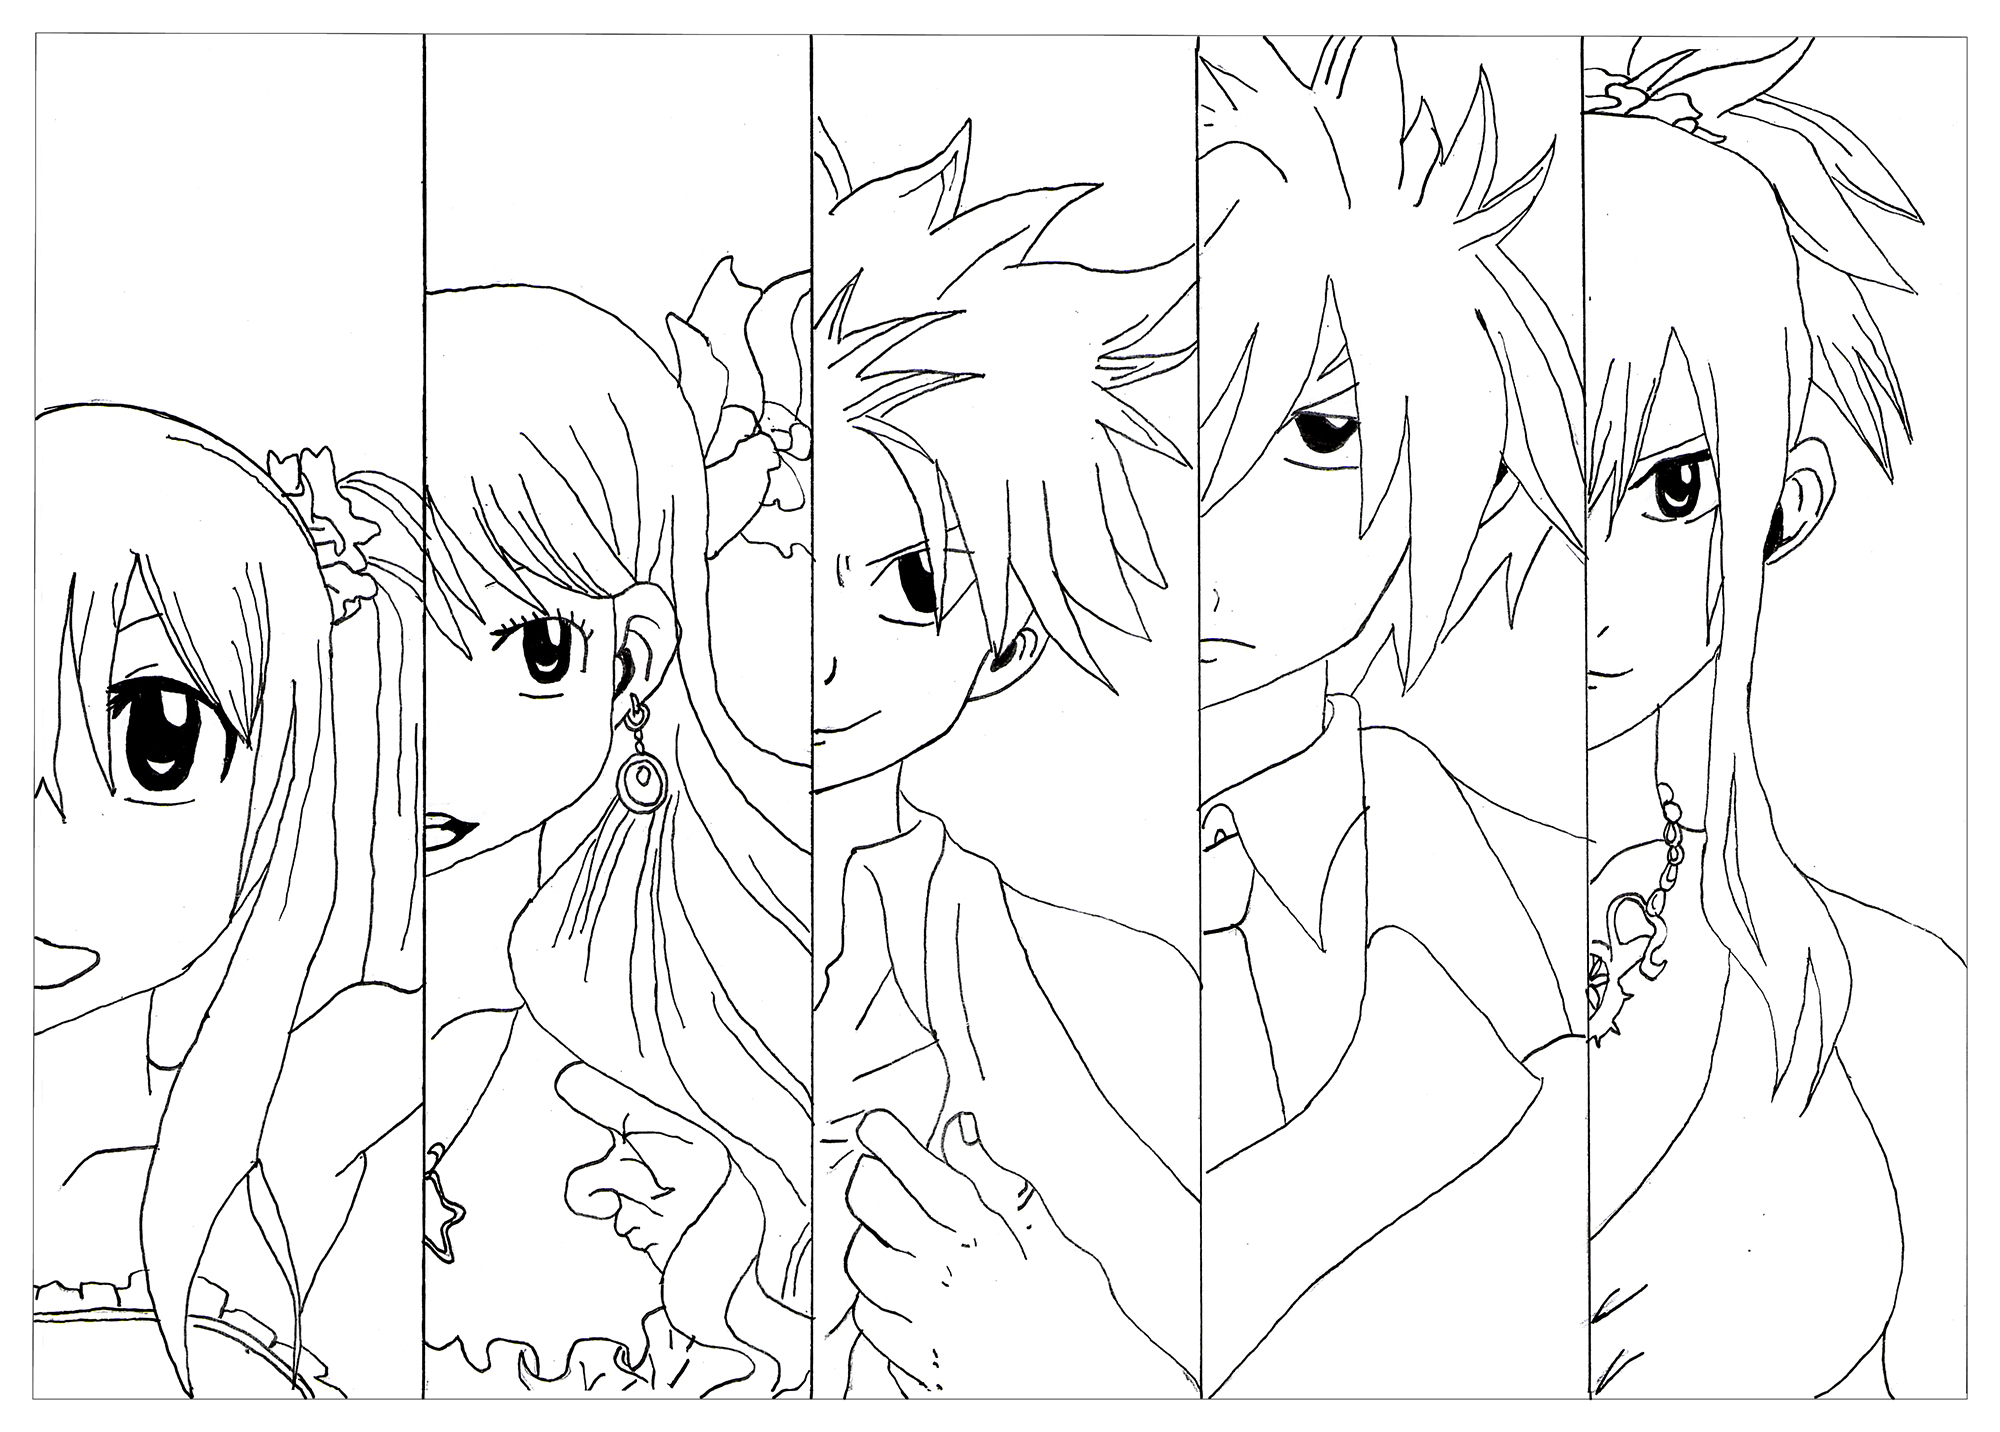 Manga fairy tail krissy Manga Anime Coloring pages for adults